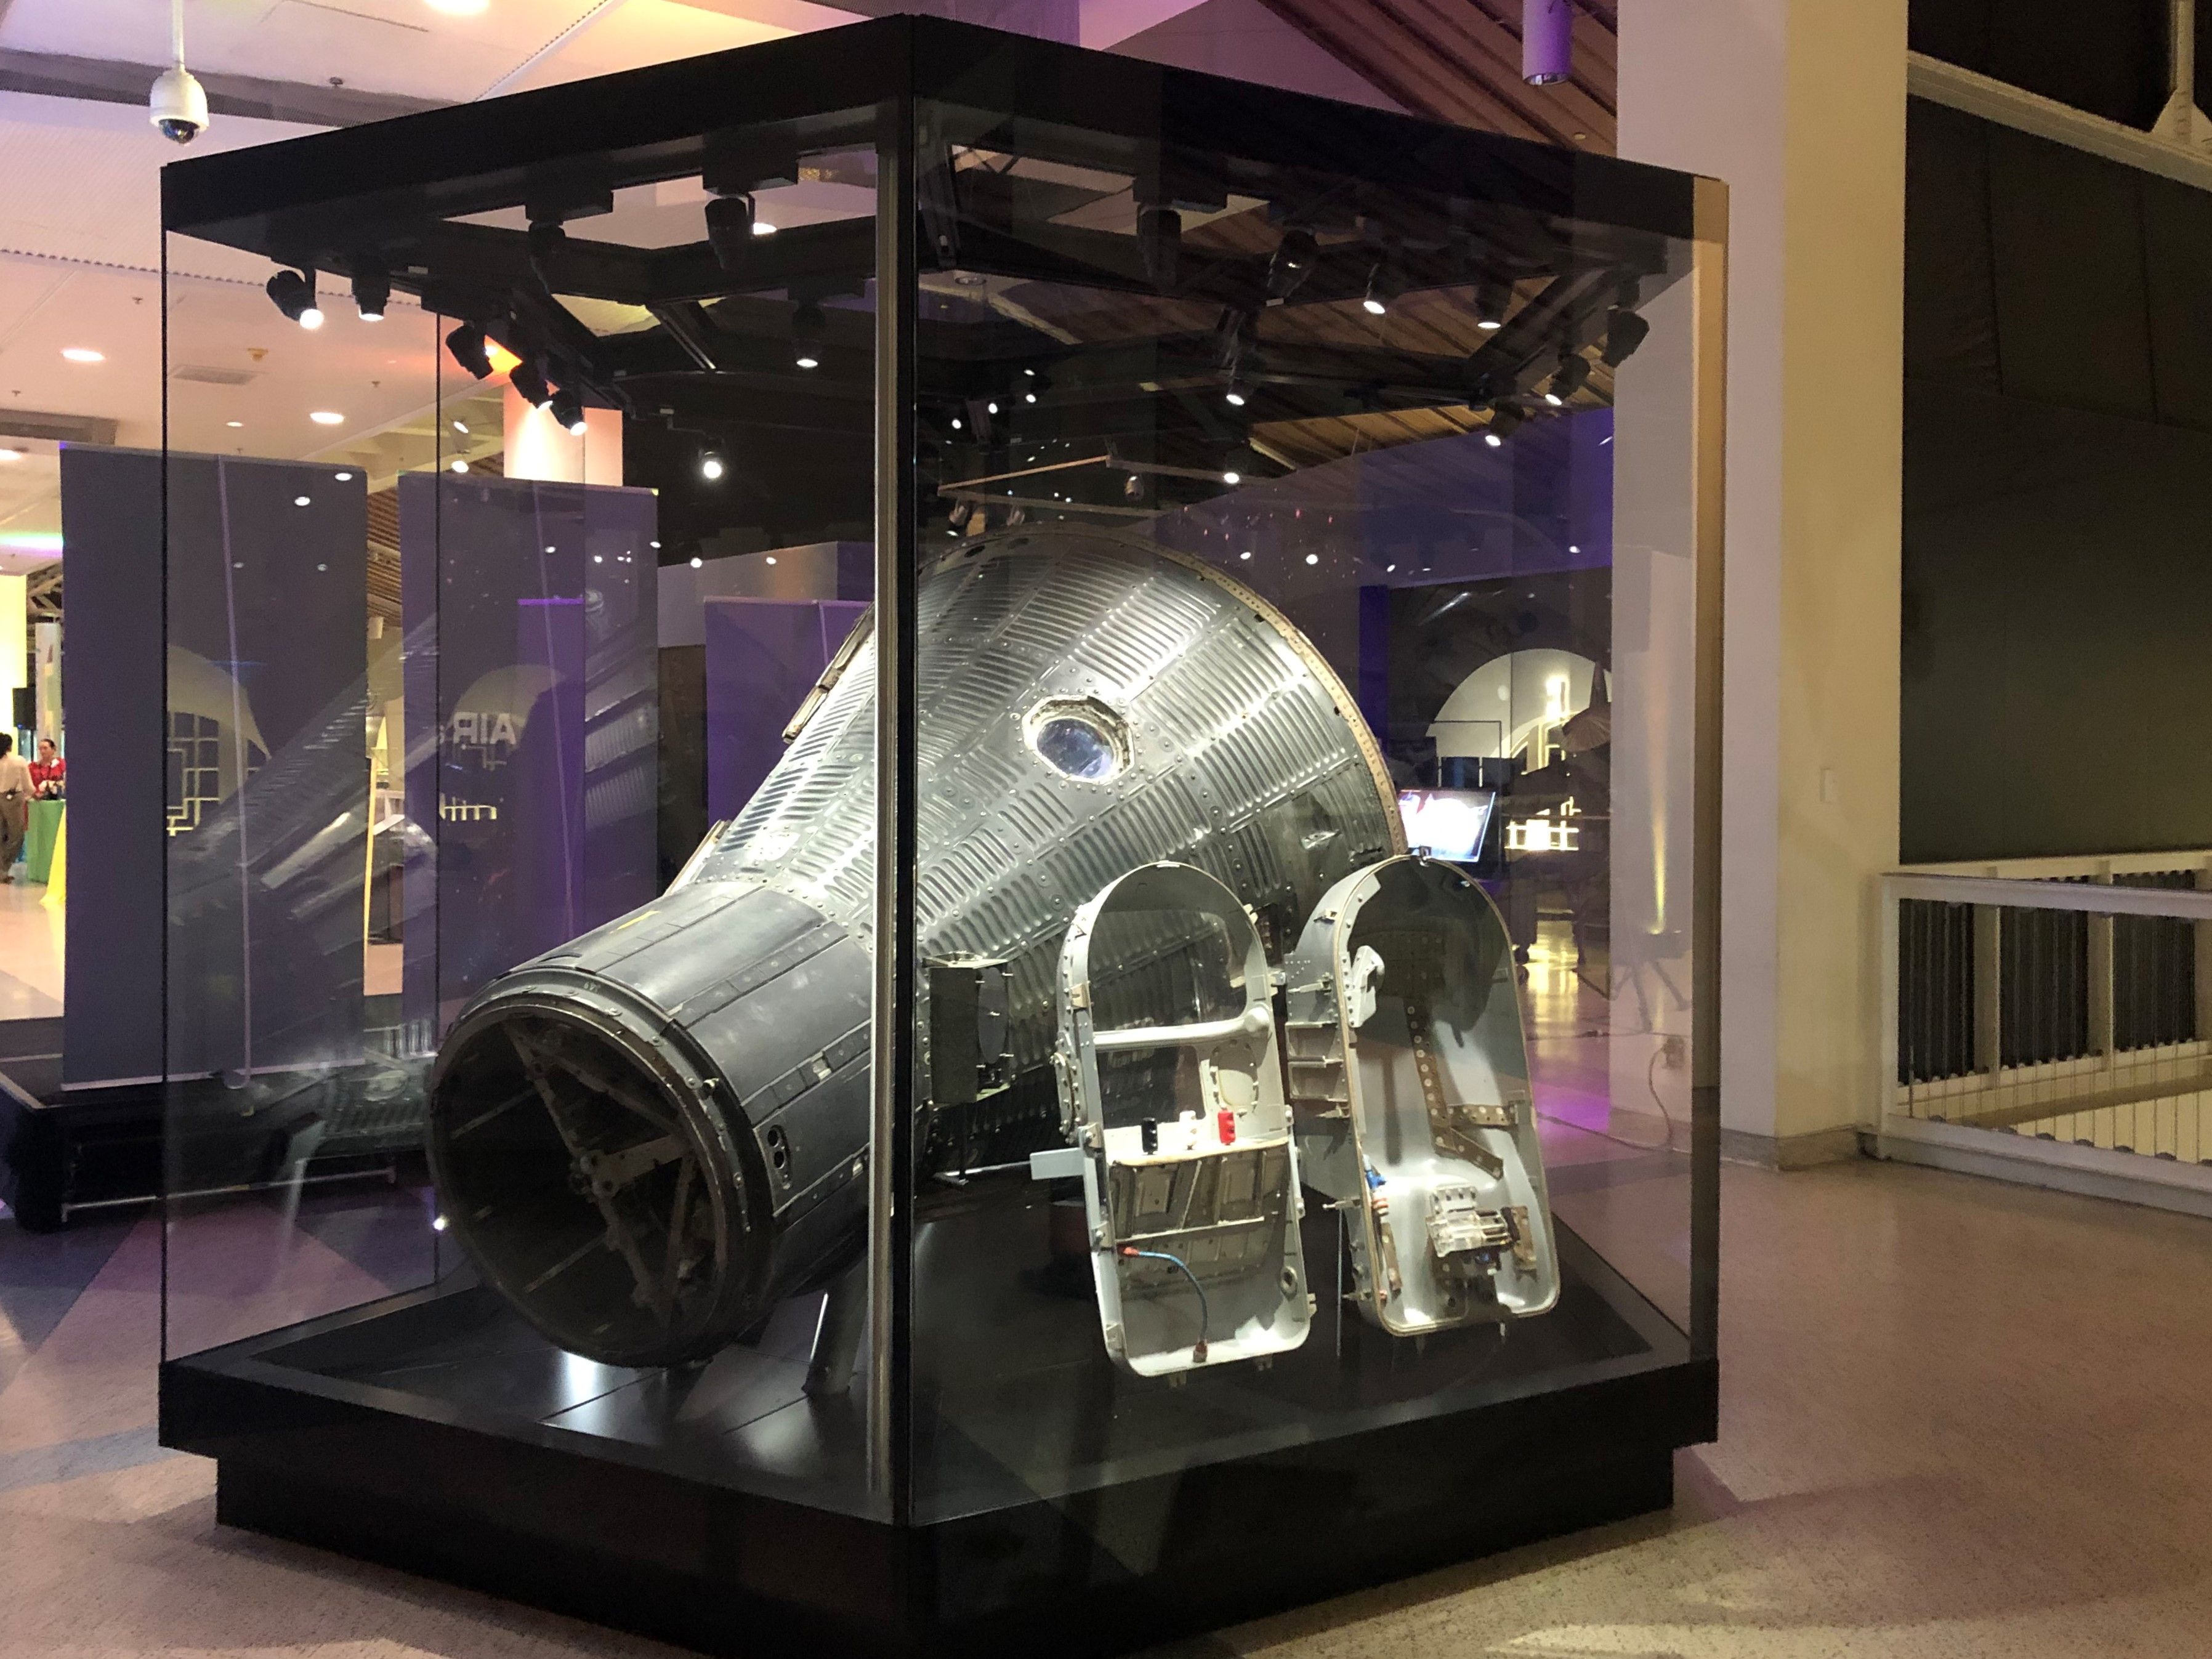 Mercury-Redstone 2 capsule and chimpanzee flight couch on display at the California Science Center